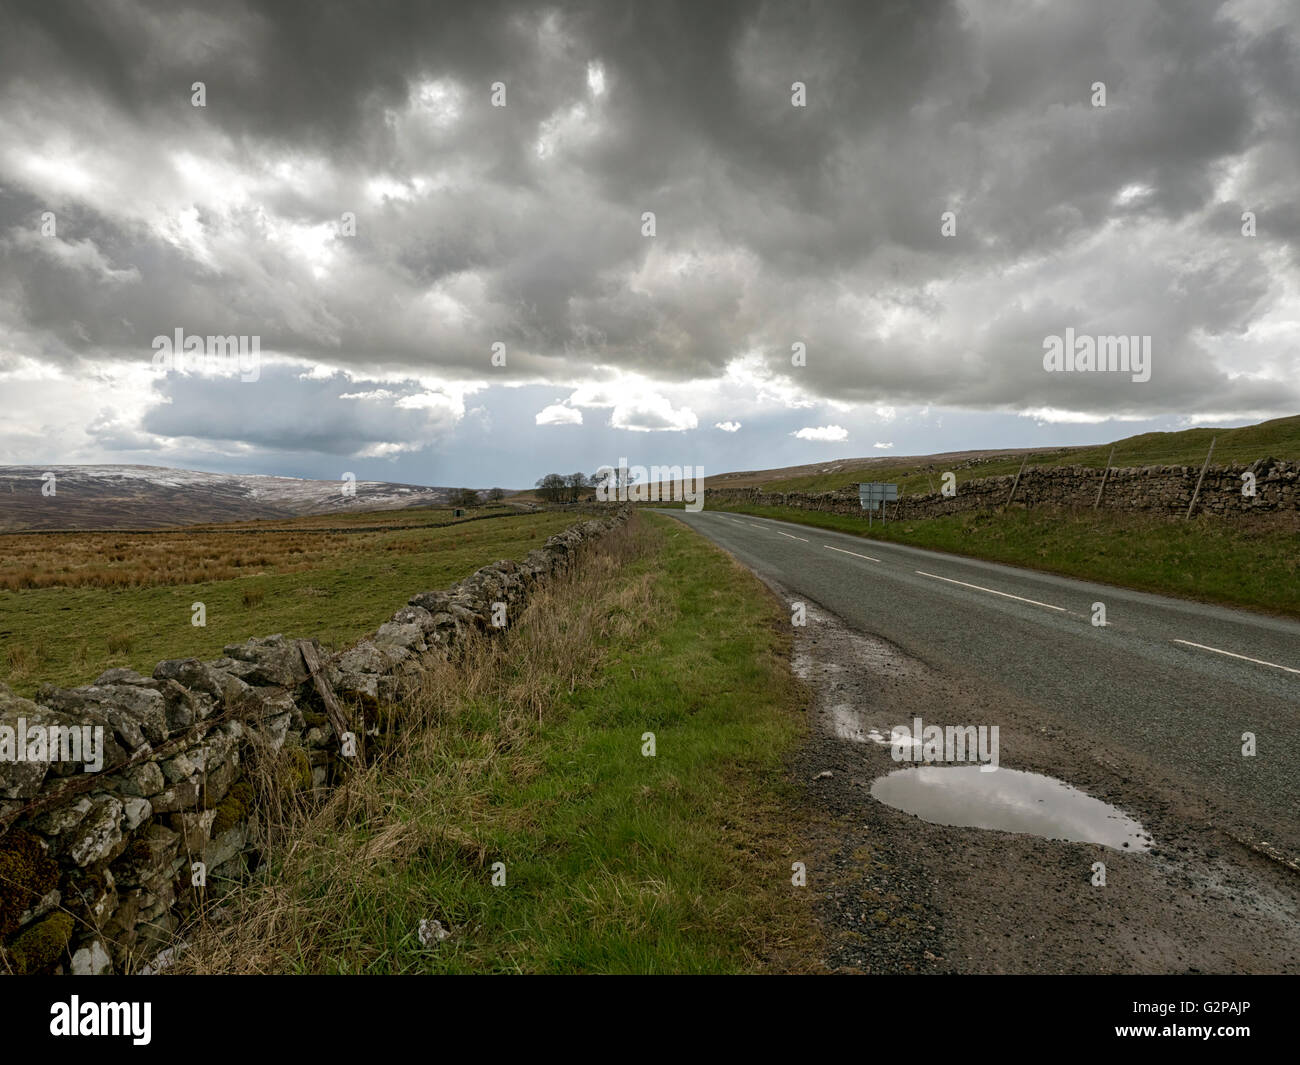 North Pennines road (A686) in spring snow near Alston, Cumbria, going to Penrith - Stock Image